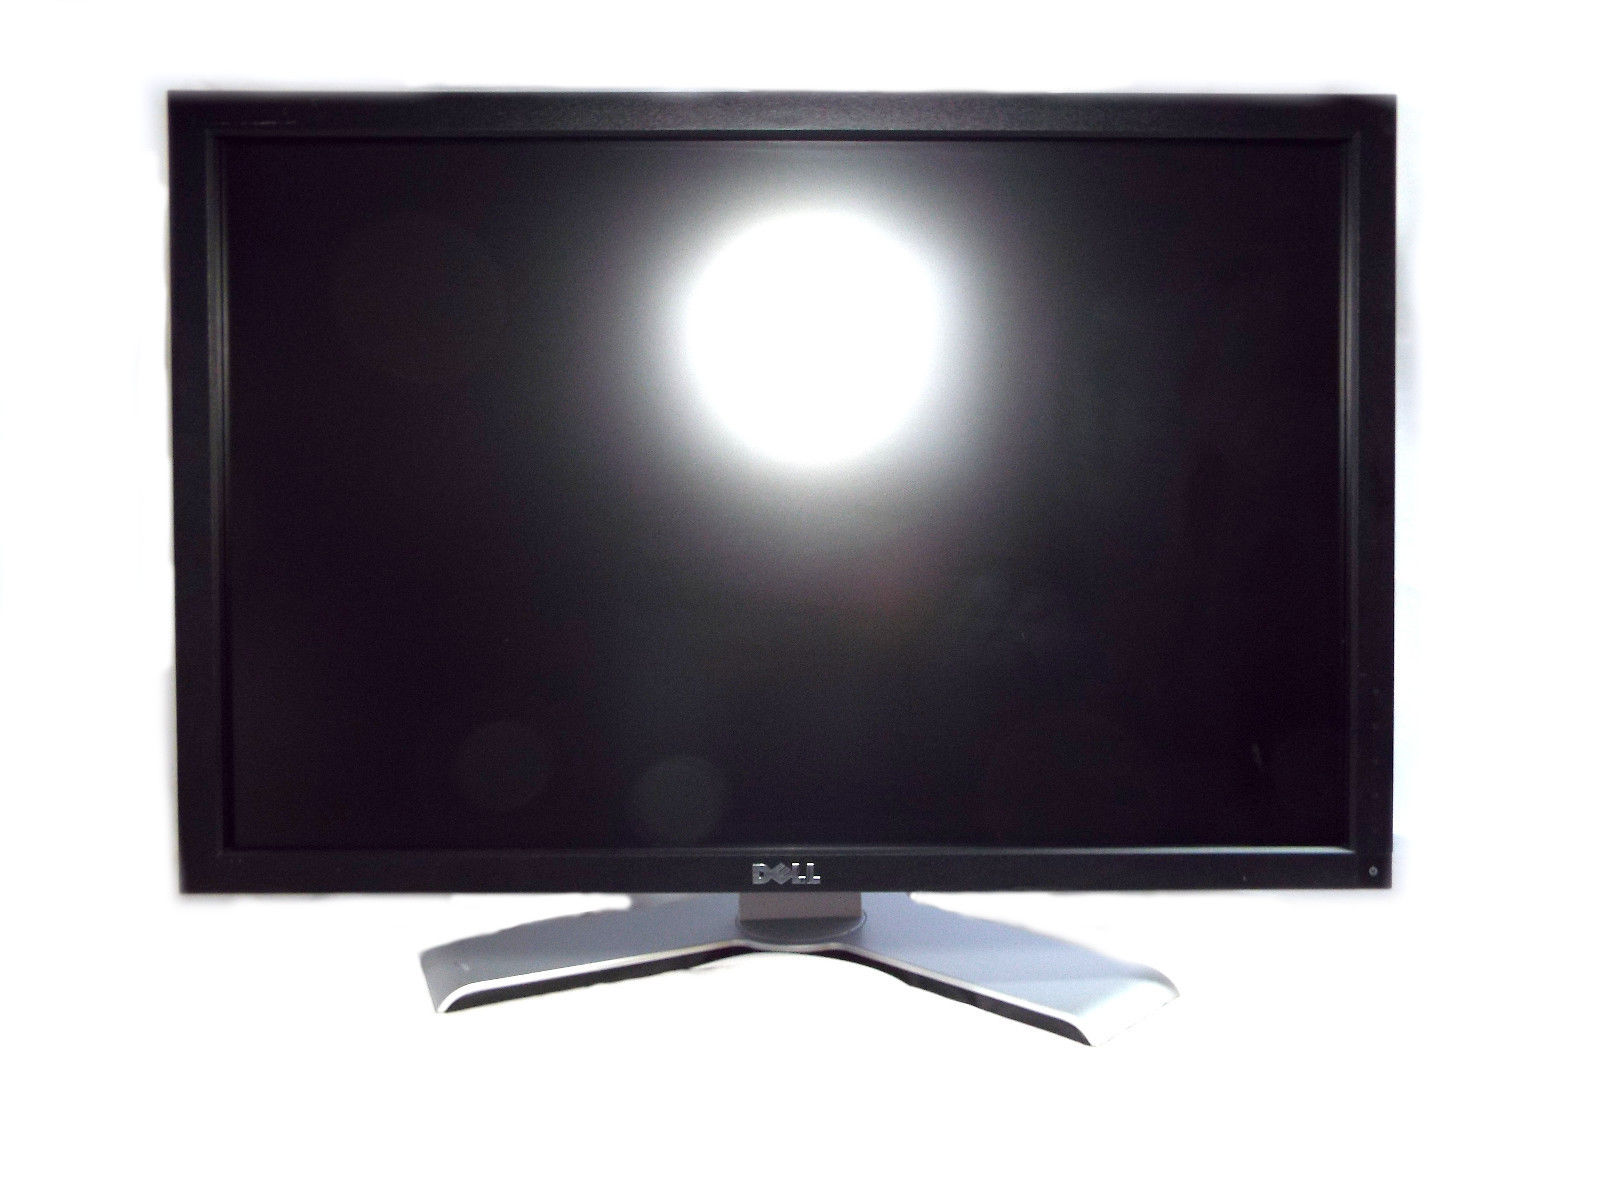 "Used Dell Ultrasharp LED U2410f 23"" 1900x1200 60hz Monitor"